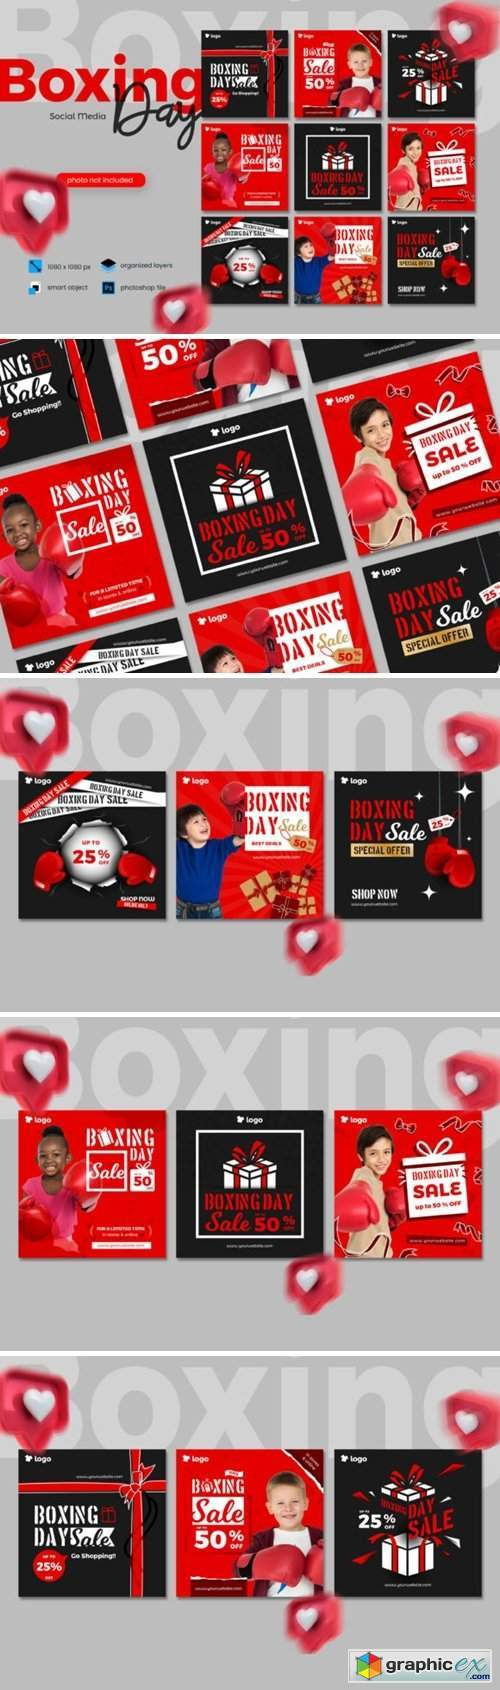 Boxing Day Sale Social Media Template